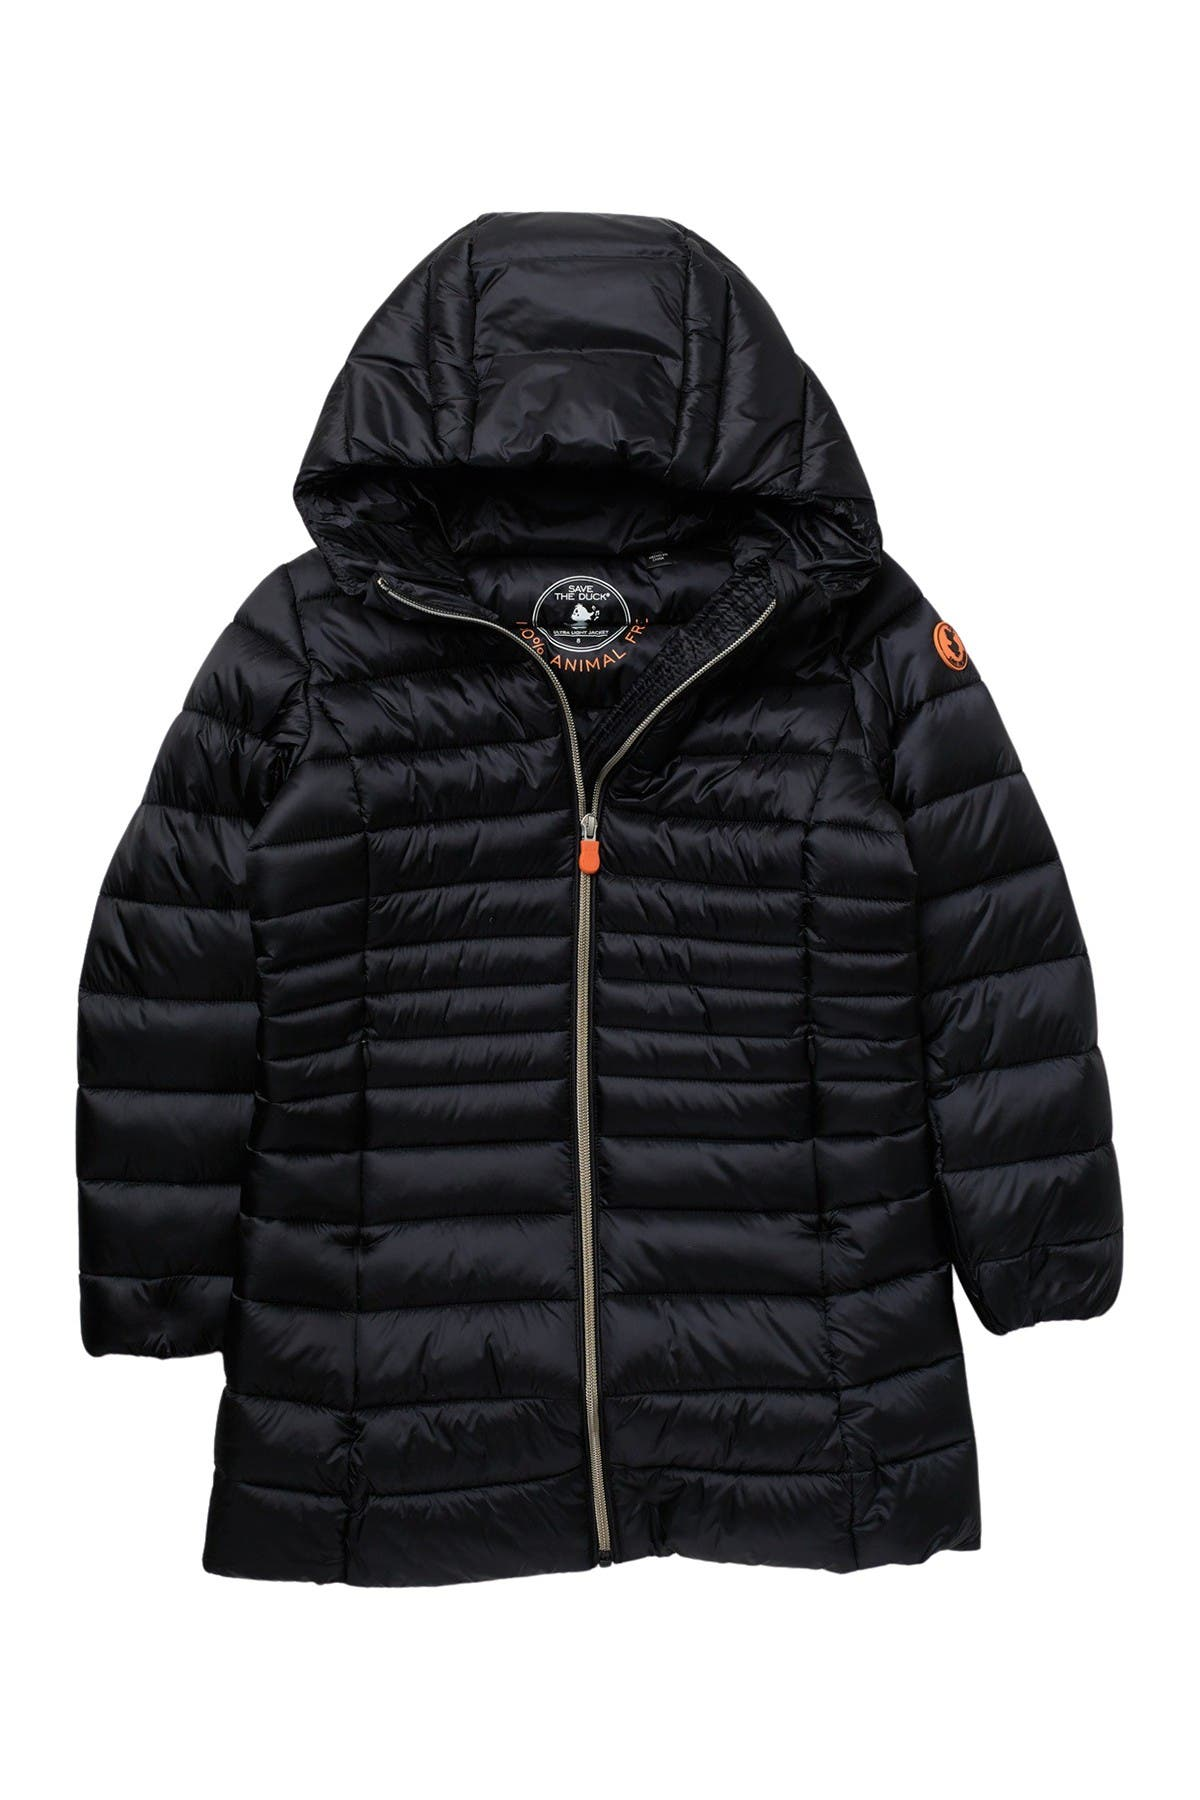 Image of Save The Duck Long Puffer Jacket